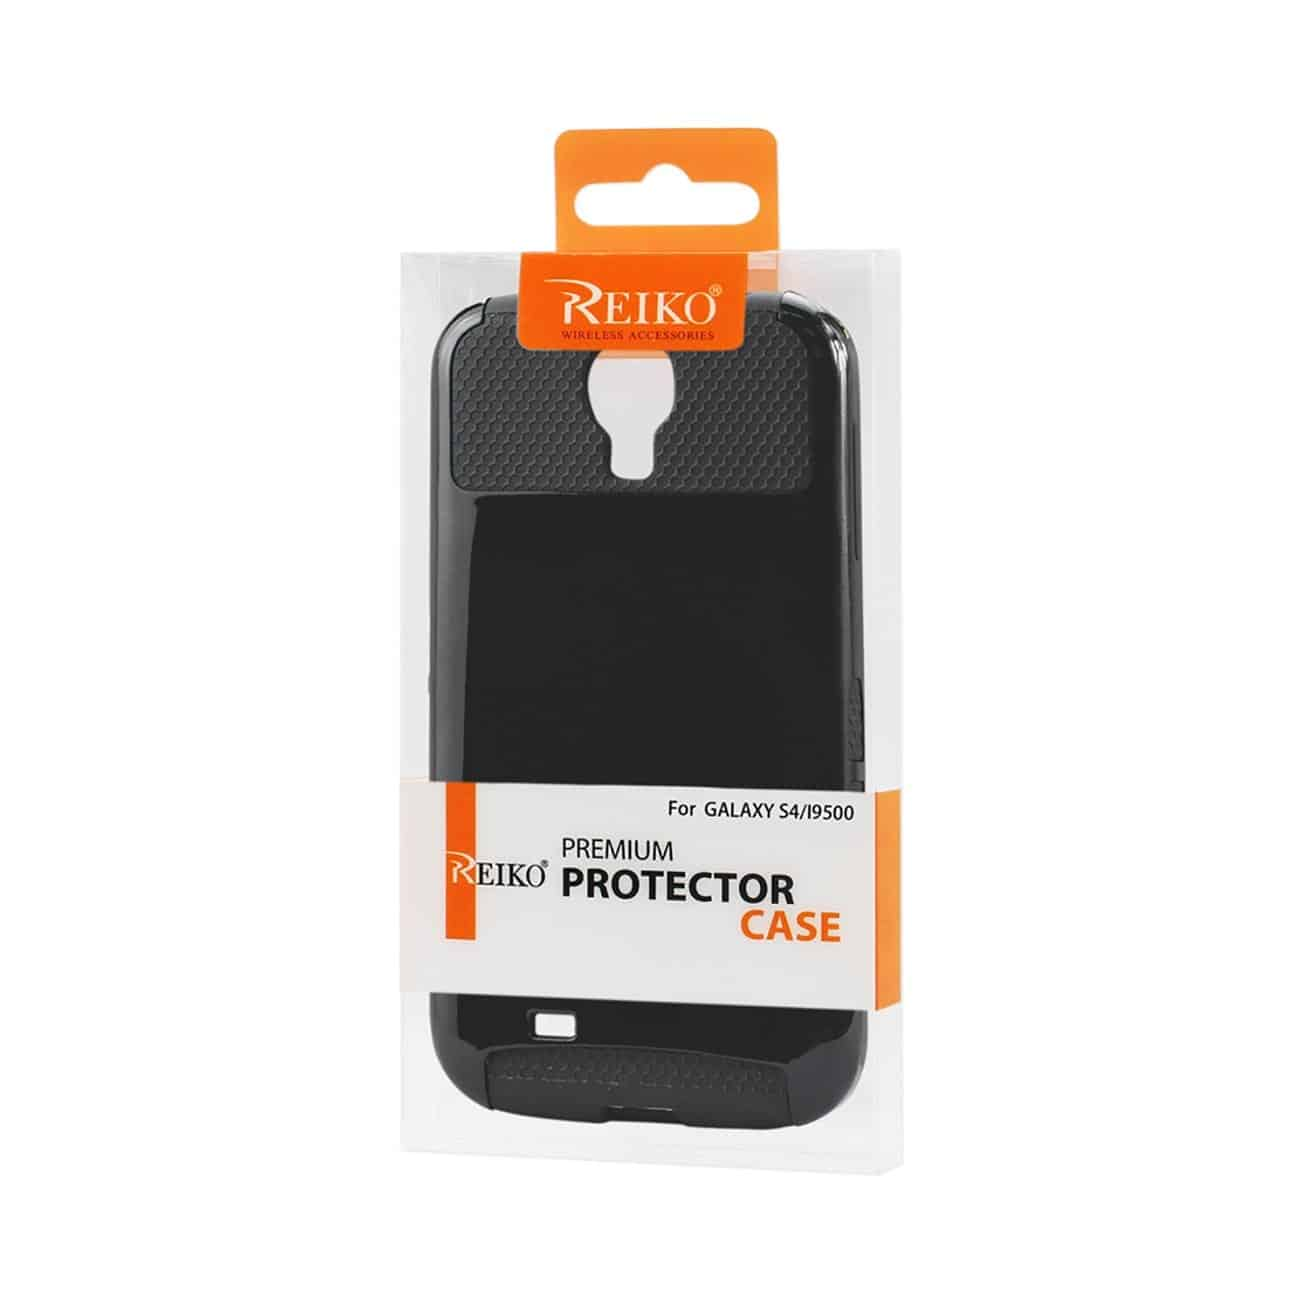 SAMSUNG GALAXY S4 CASE WITH CHIP AND CARD HOLDER IN BLACK